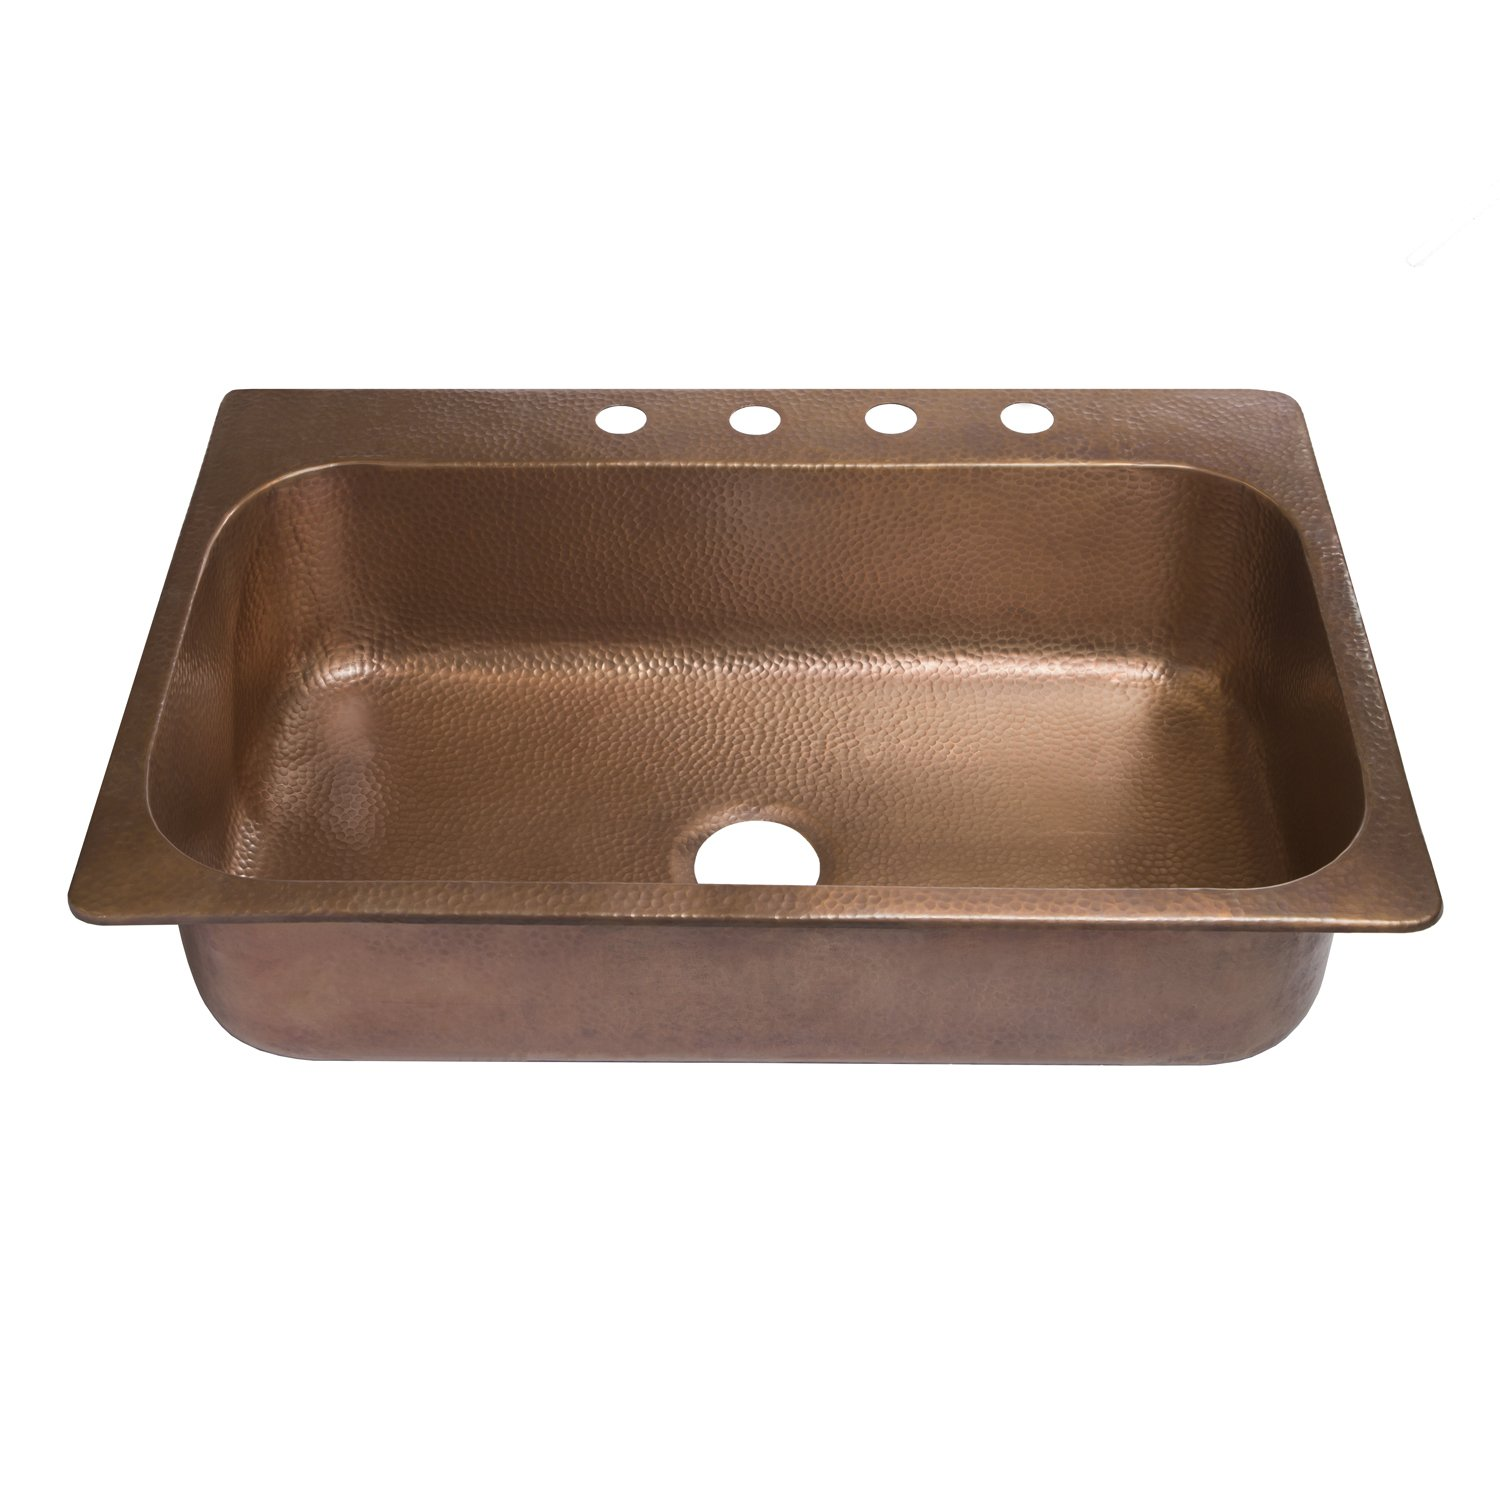 Sinkology SK101-33AC-4 Angelico 4-Hole Drop-in 33-in Single Bowl Copper Kitchen Sink by Sinkology